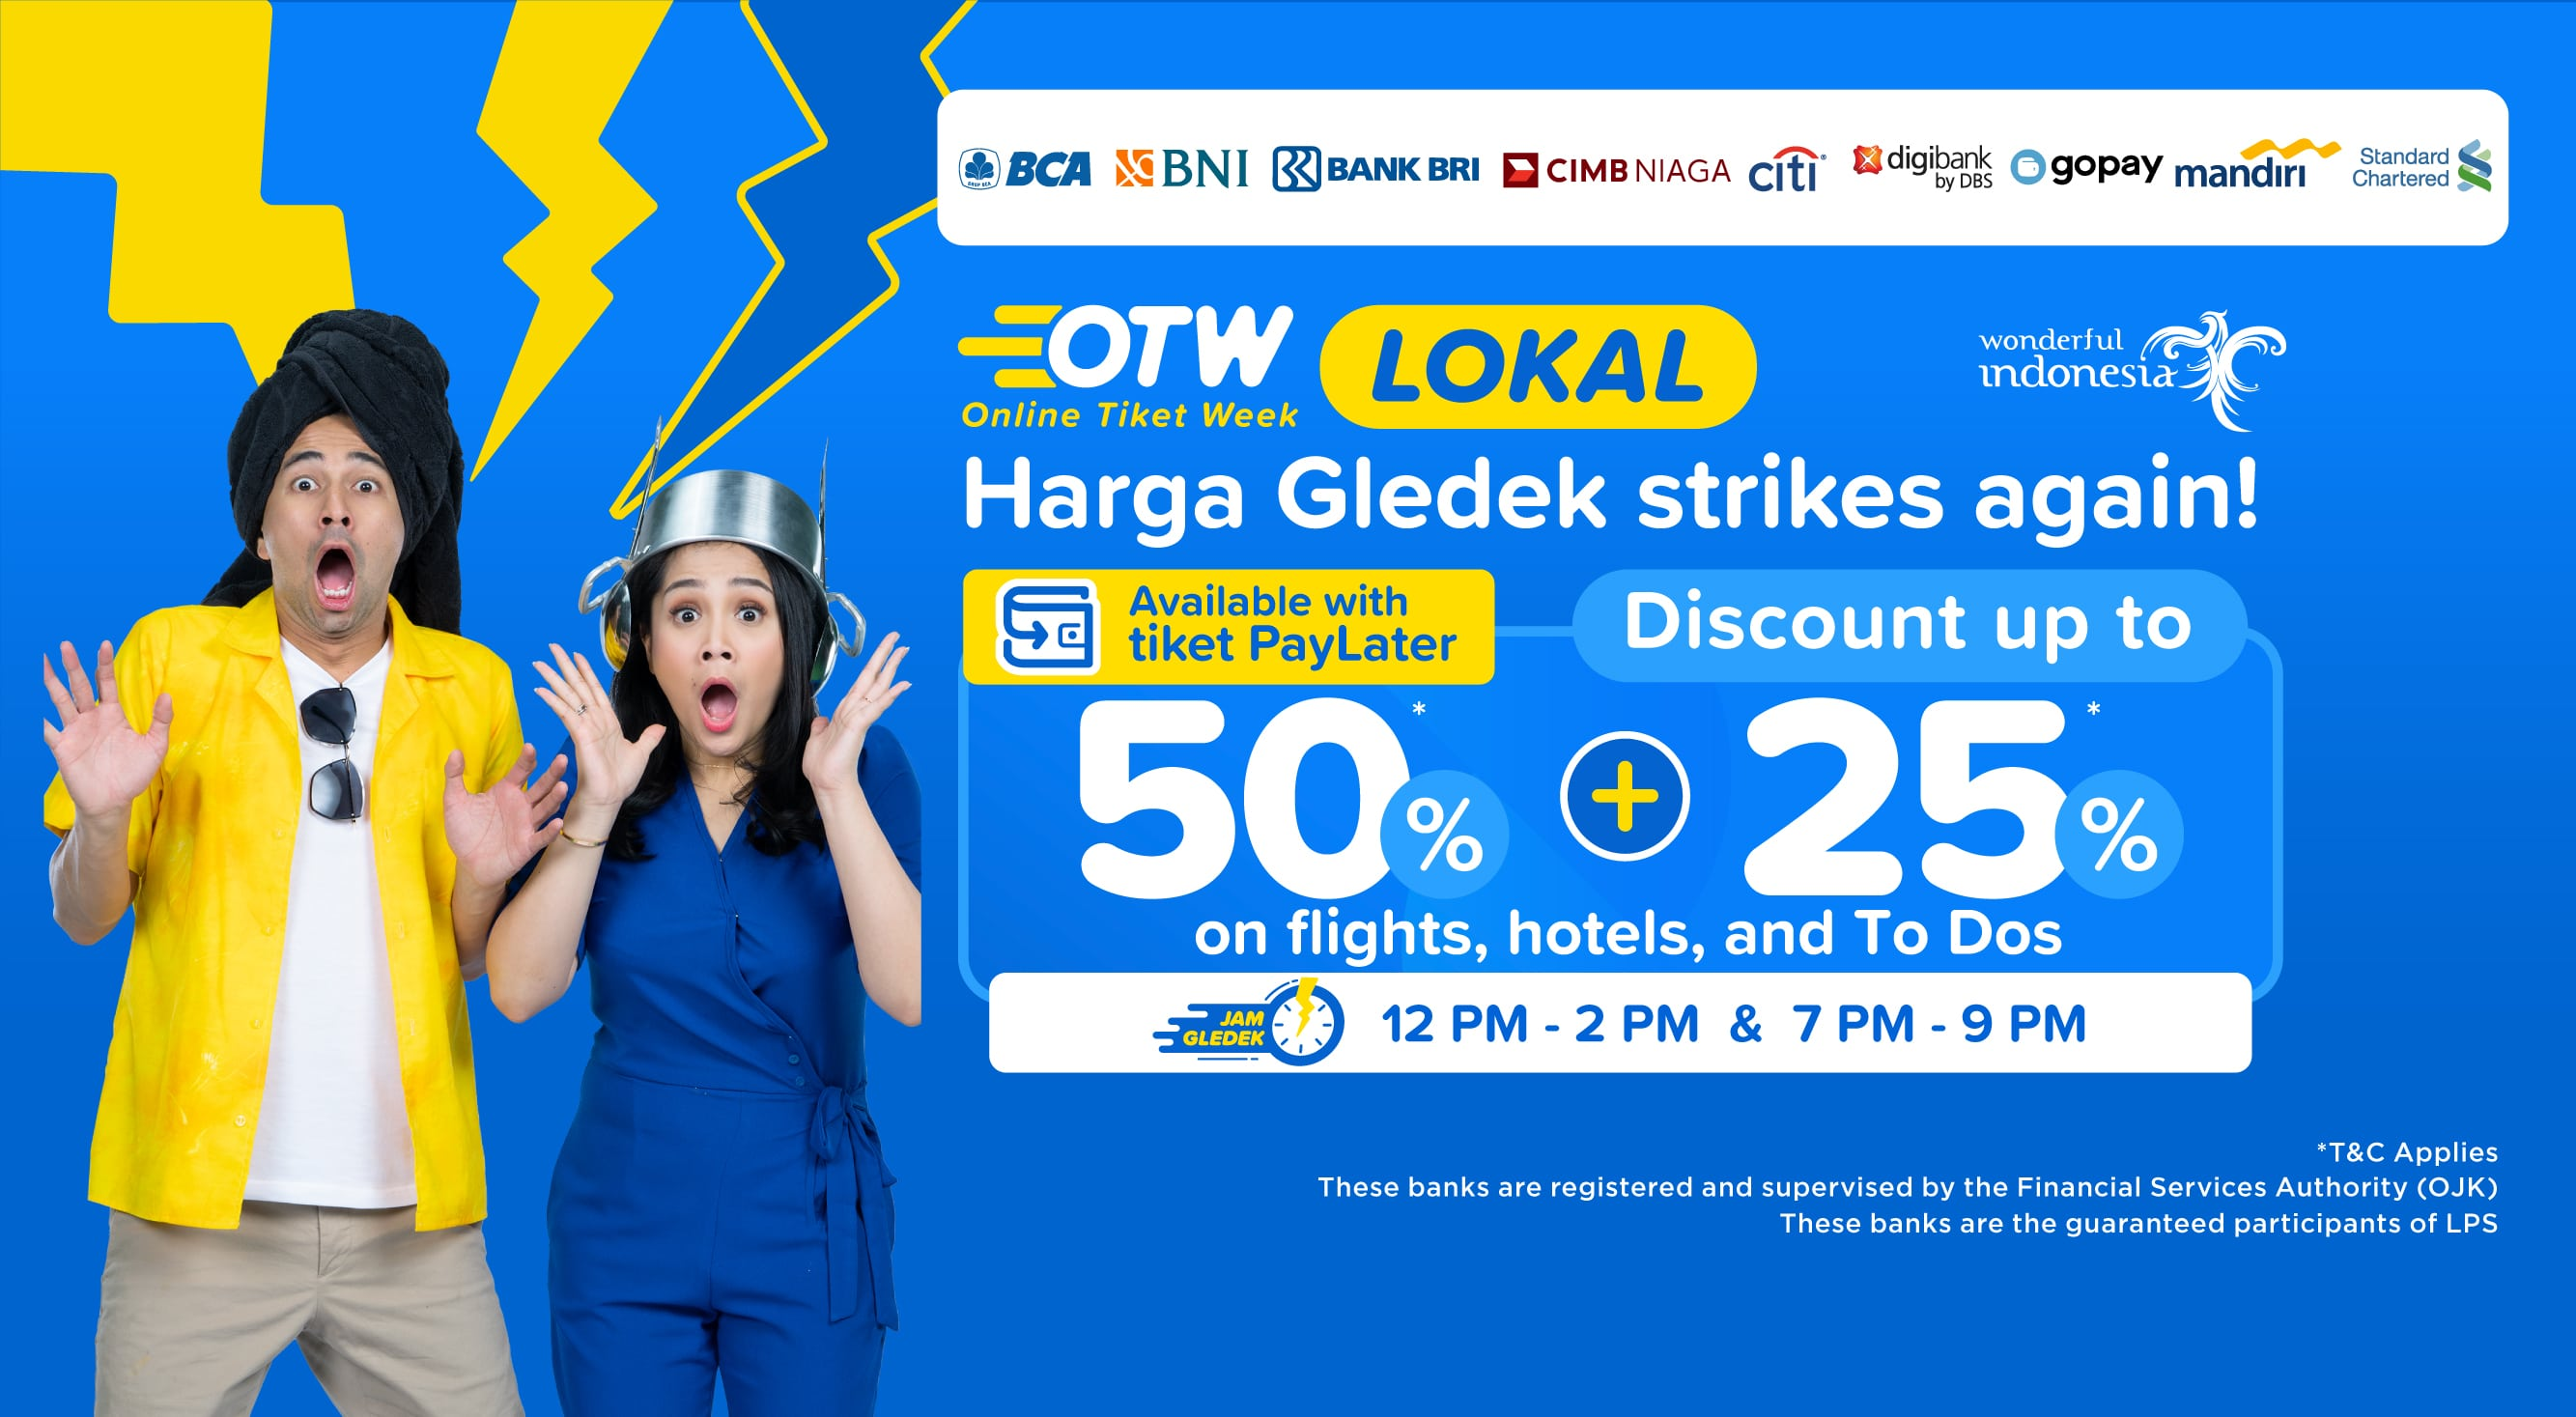 ⚡ OTW Lokal flight, hotel, and To Do discount up to 50%+25% ⚡